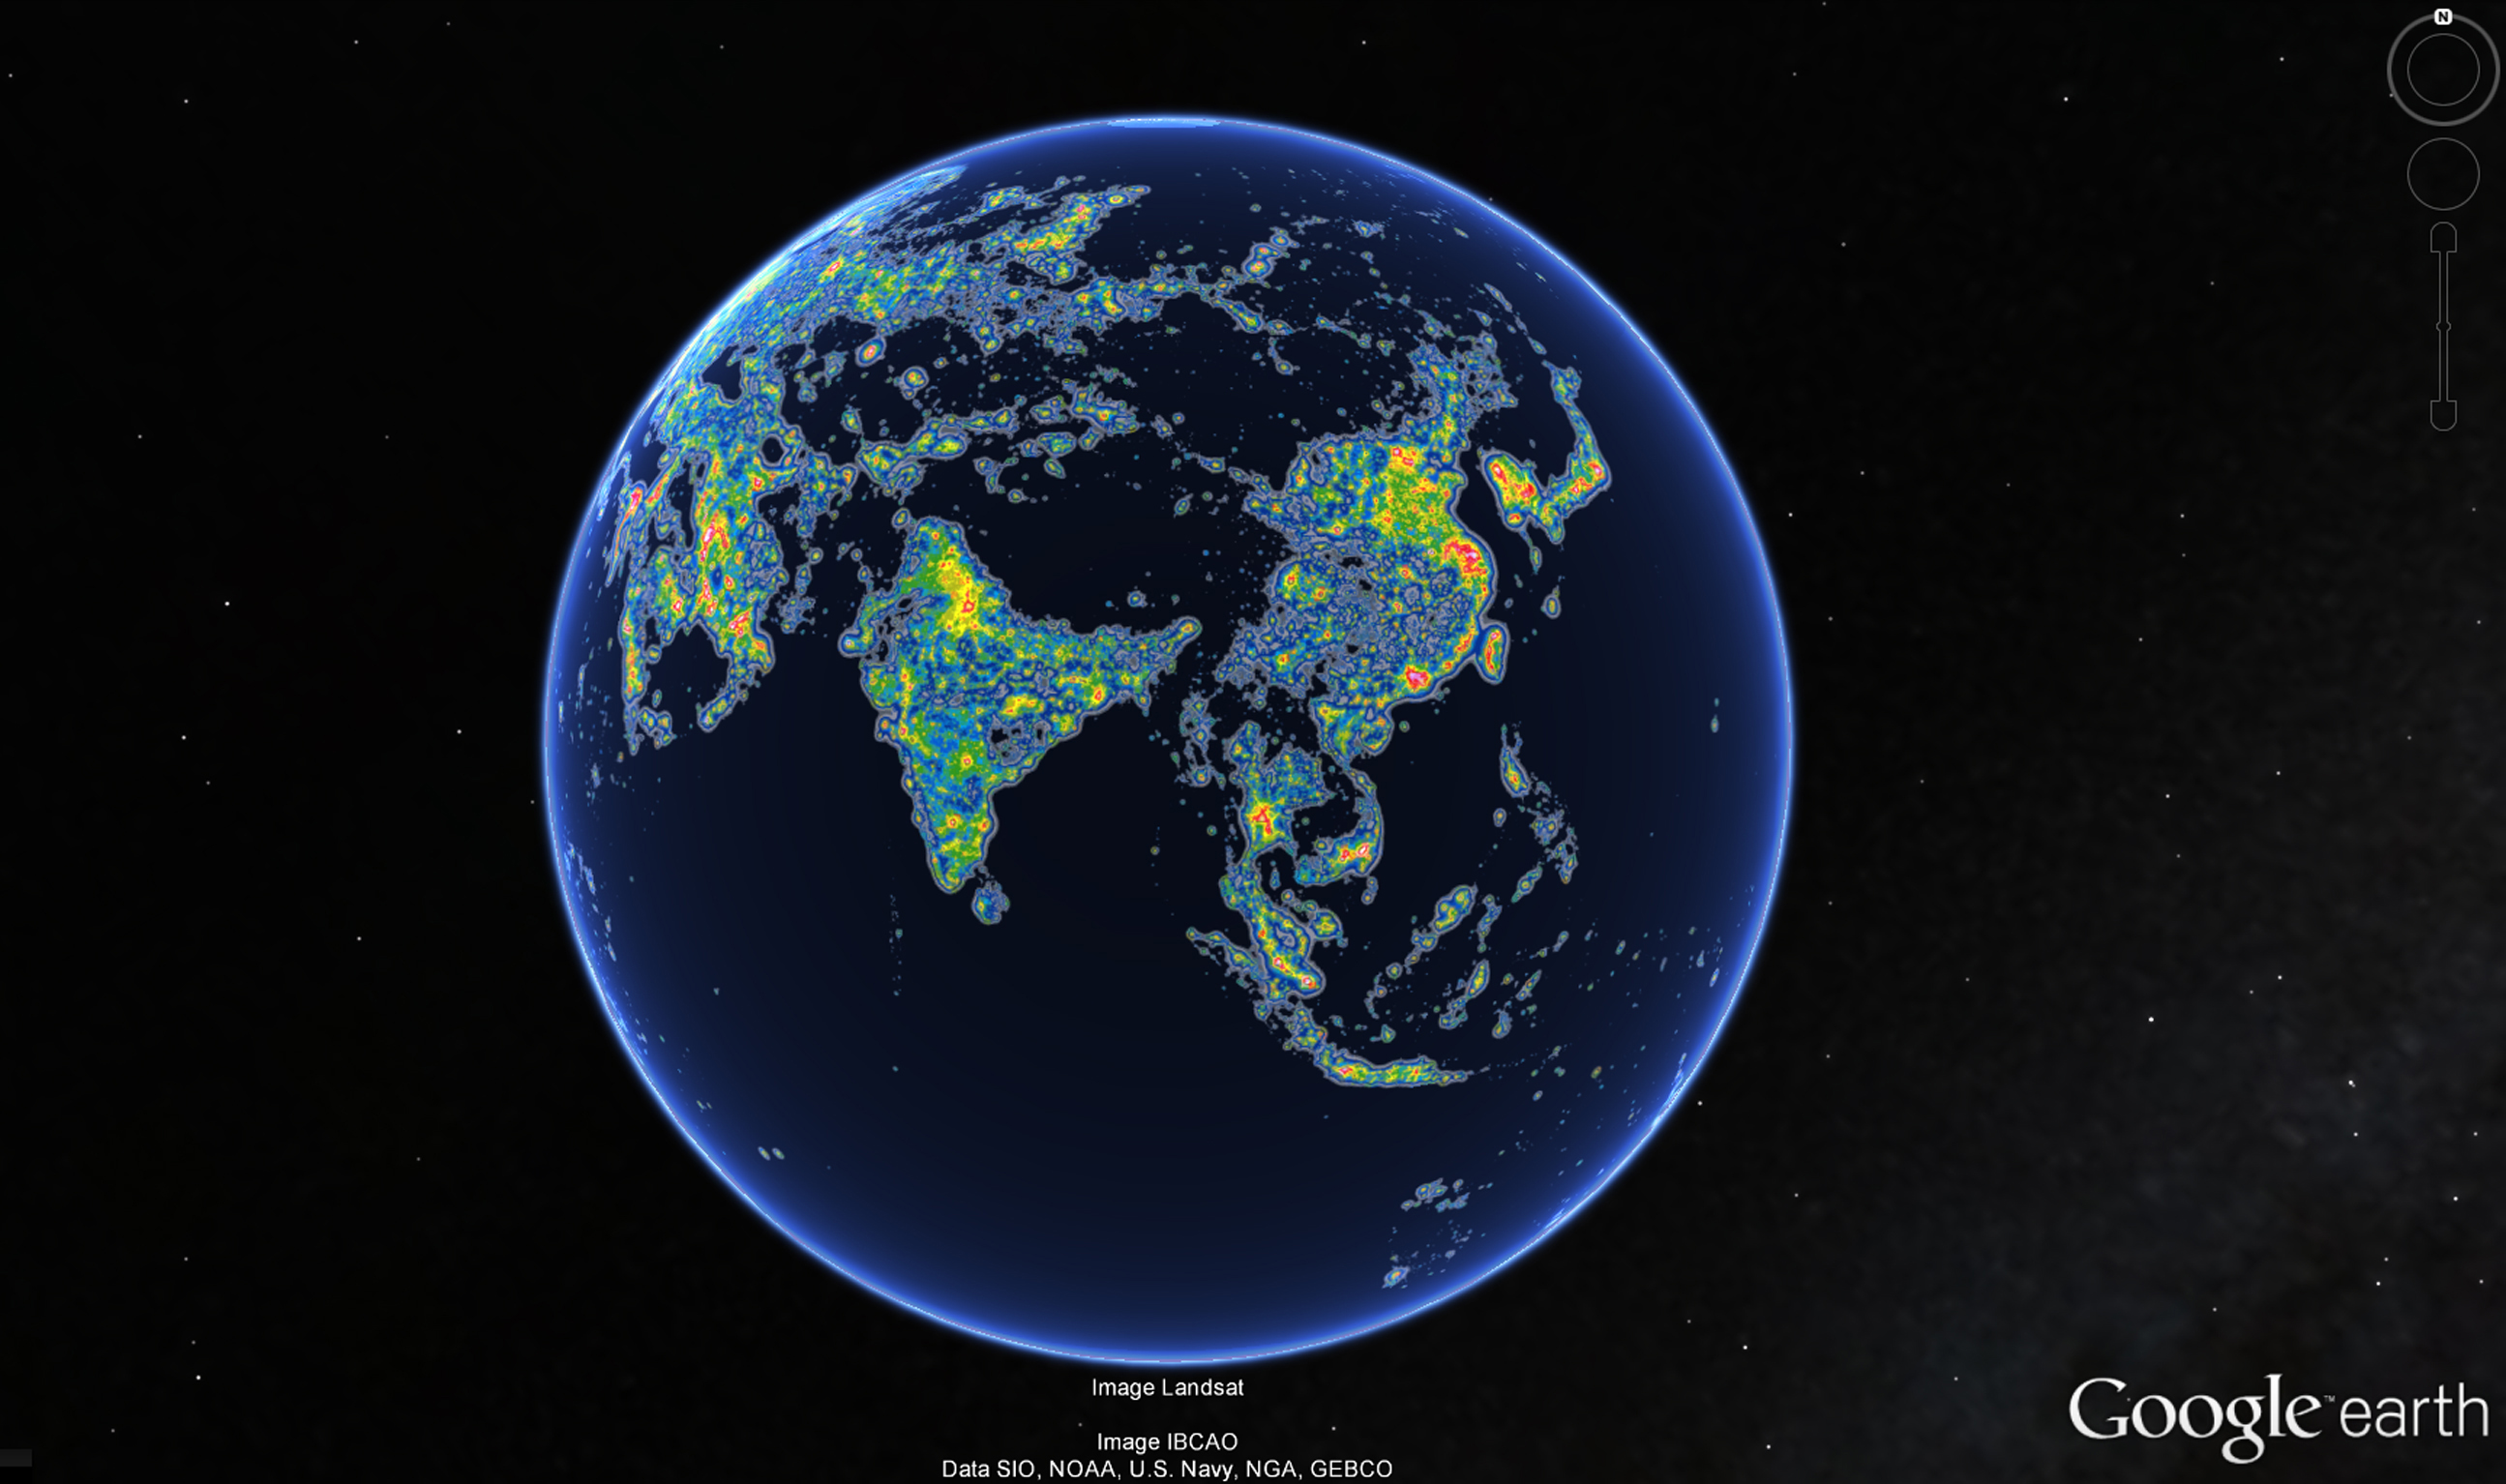 Asia in the New World Atlas of Artificial Sky Brightness, as seen in Google Earth. Source: Science